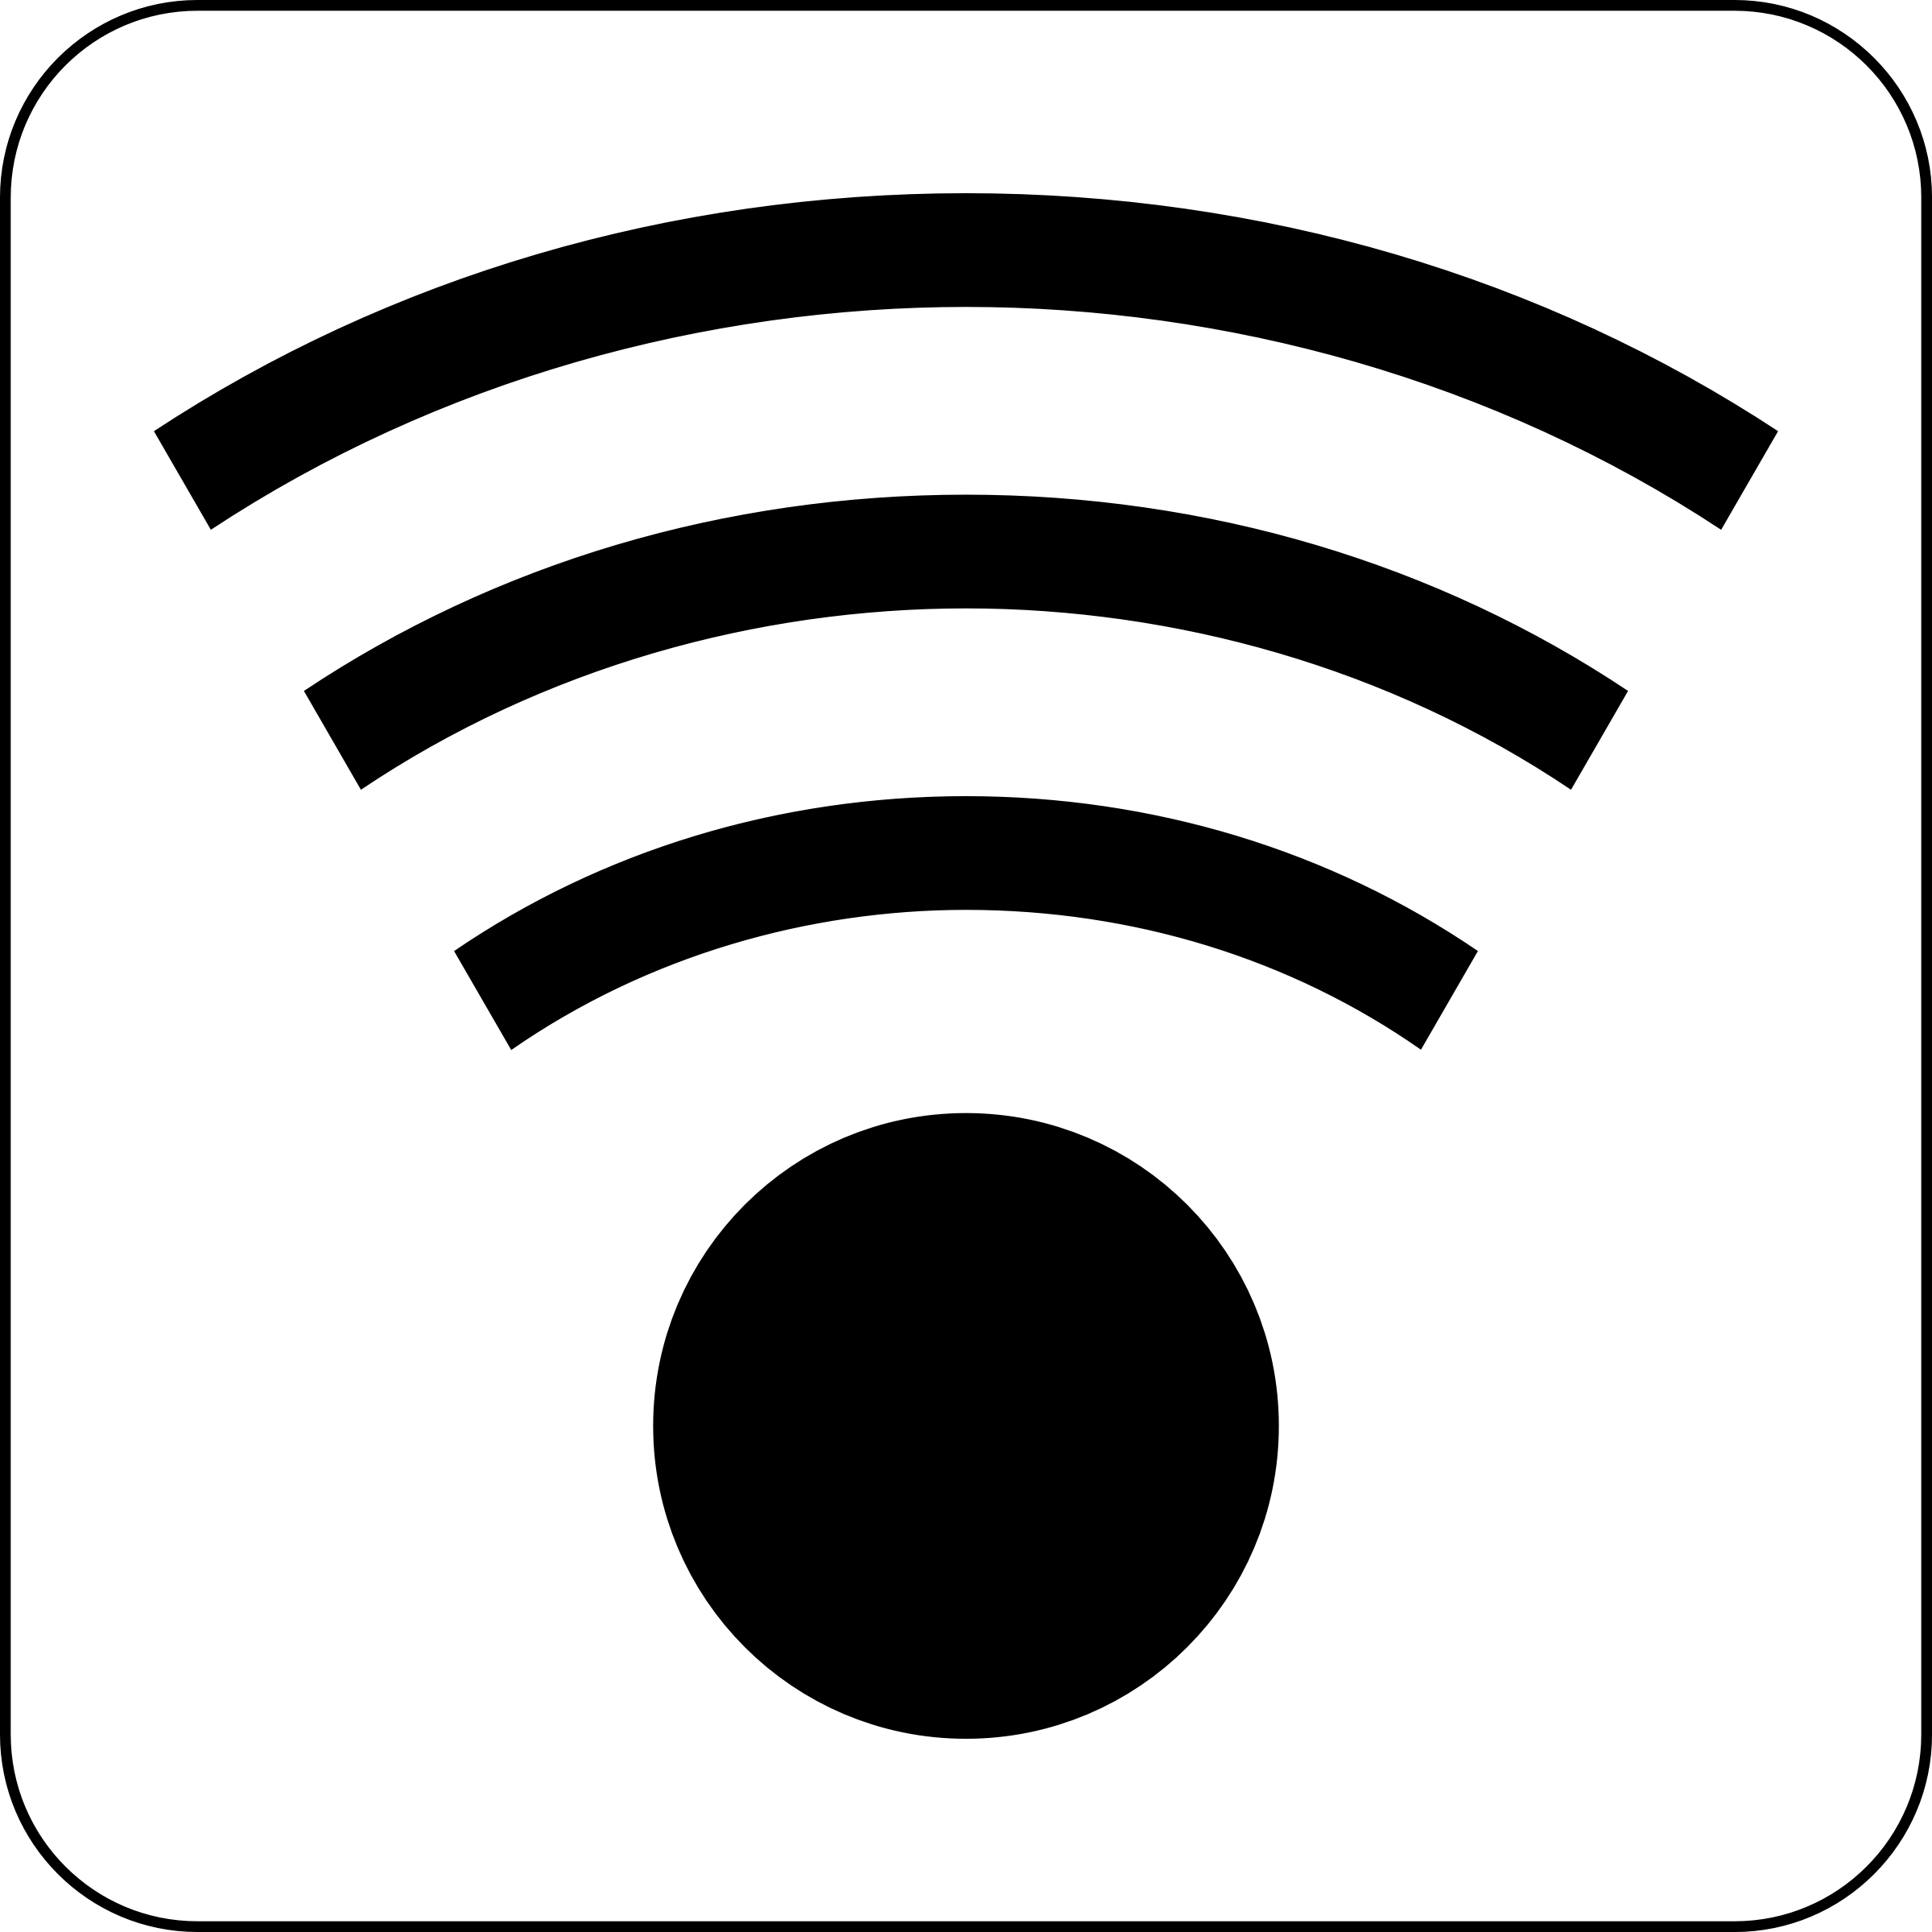 BIG IMAGE (PNG) - Wifi PNG Black And White